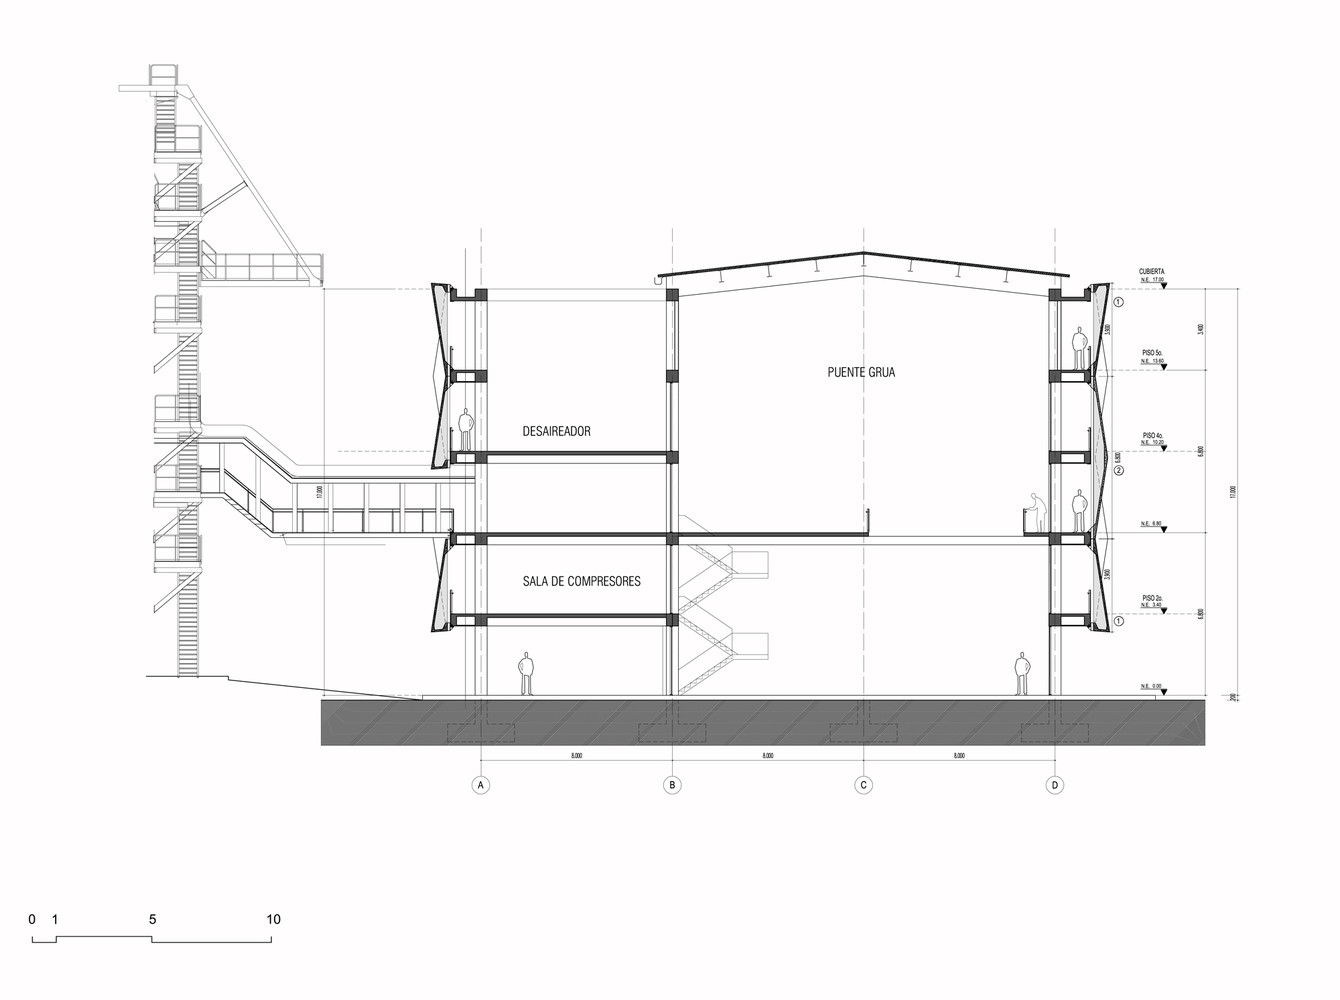 hight resolution of argos building for an electrical generator at a cement factory mgp arquitectura y urbanismo